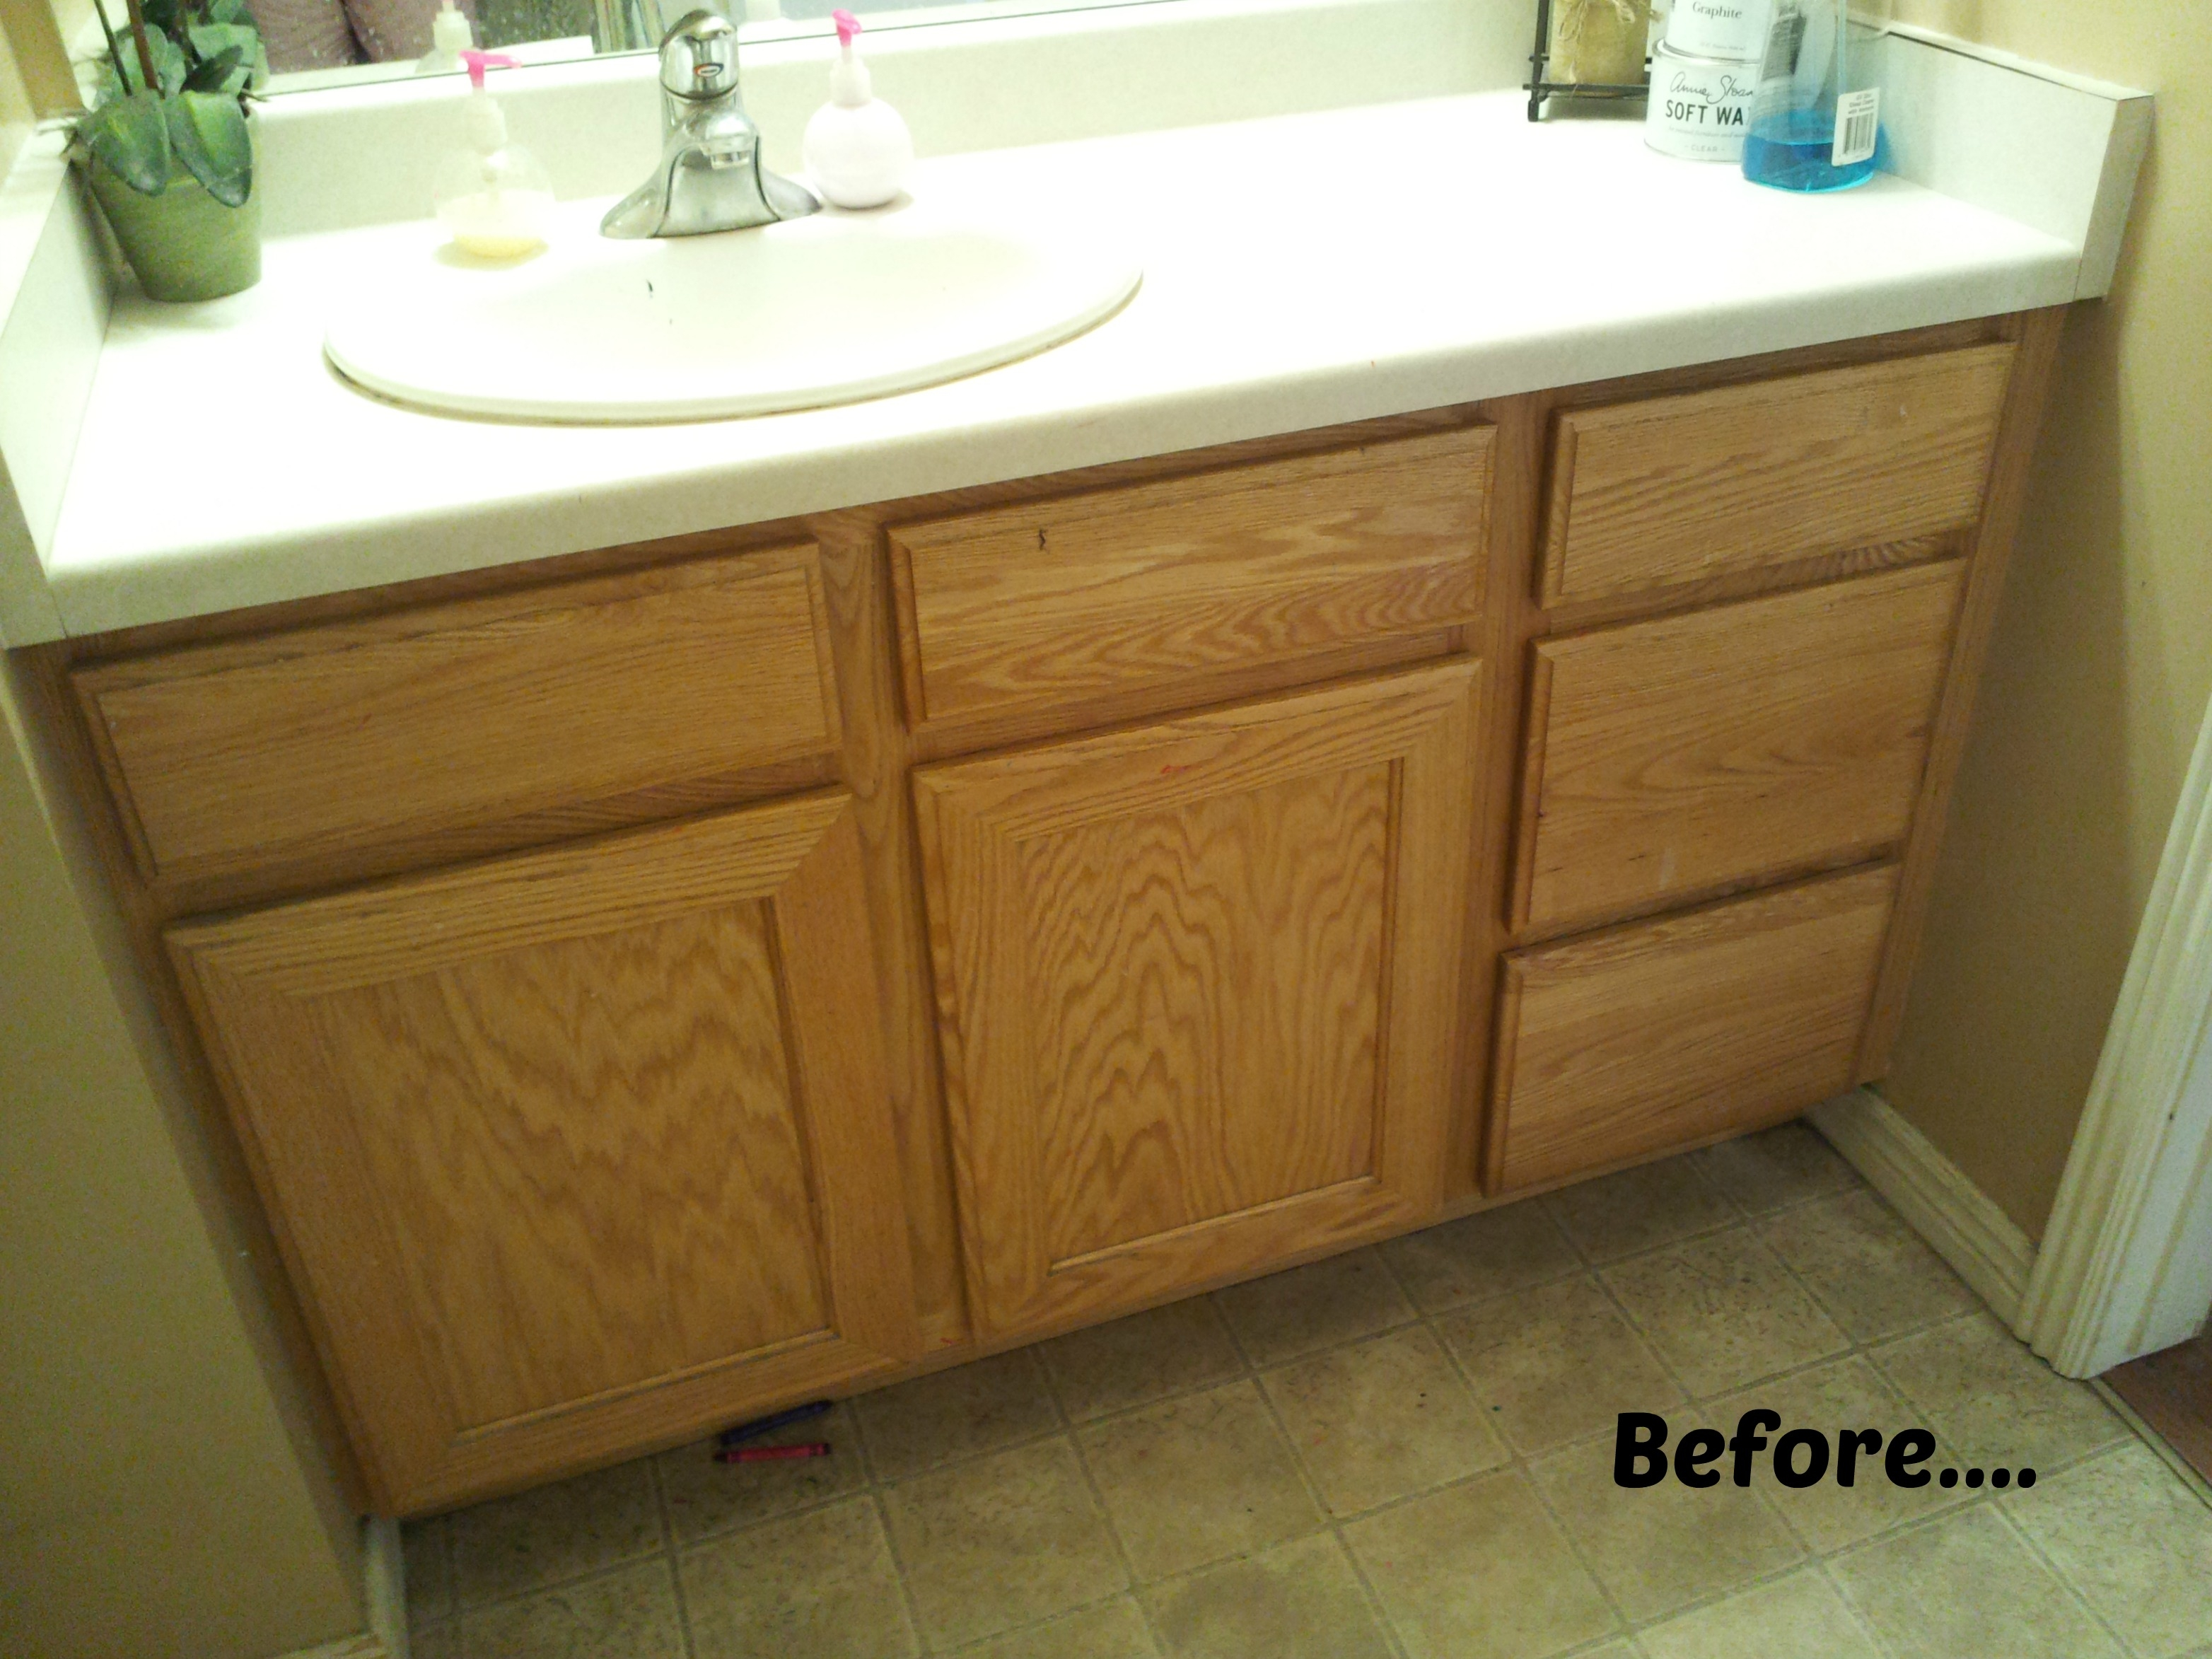 Refinish Bathroom Cabinets Ideasrefinishing bathroom vanity asarent bathroom ideas